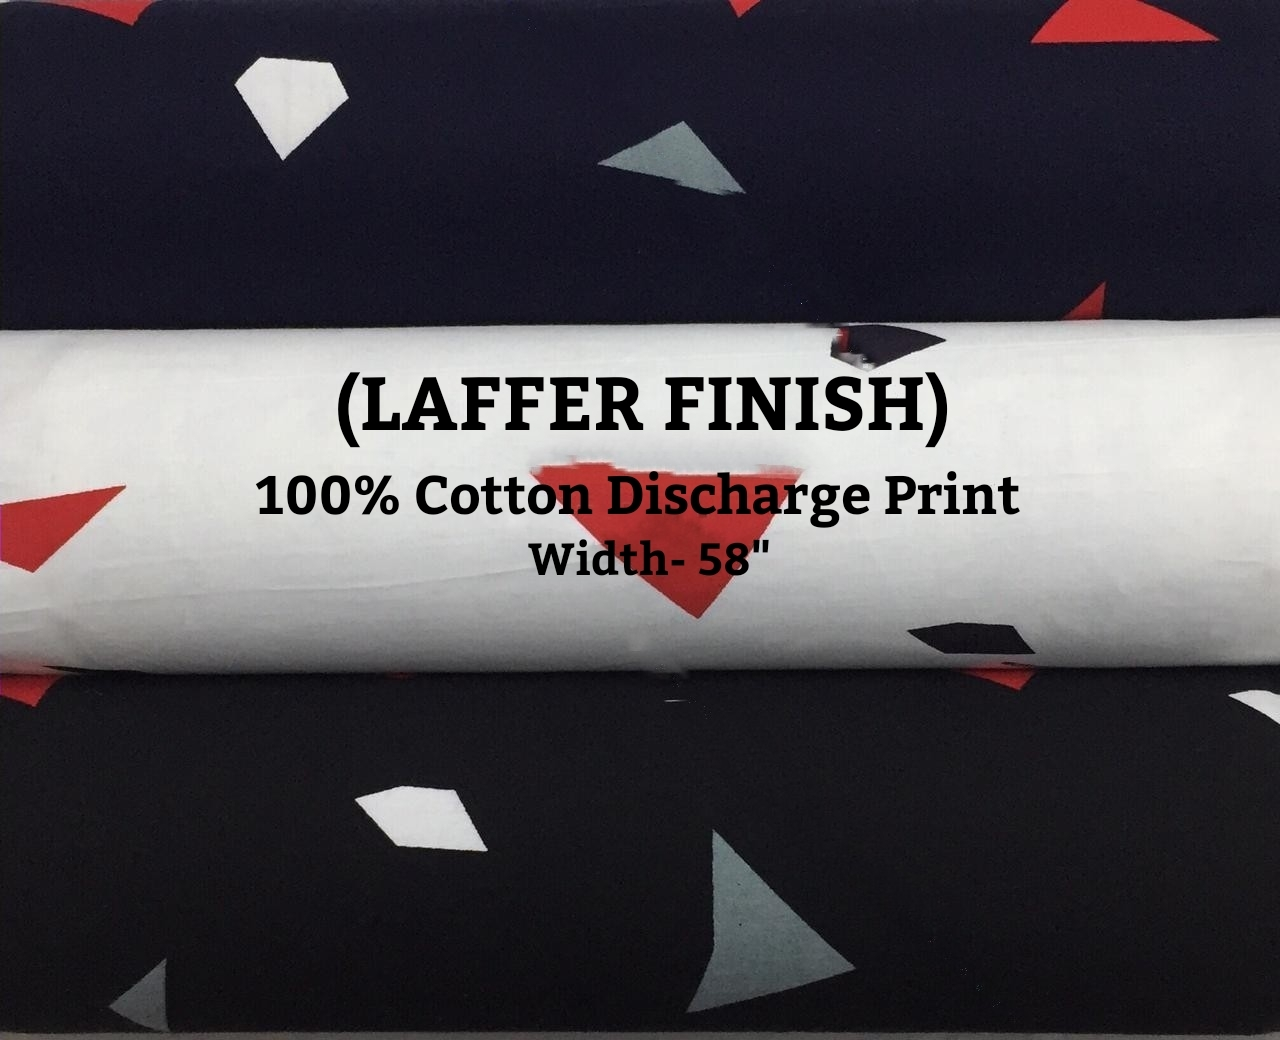 Laffer Finish 100% cotton discharge print